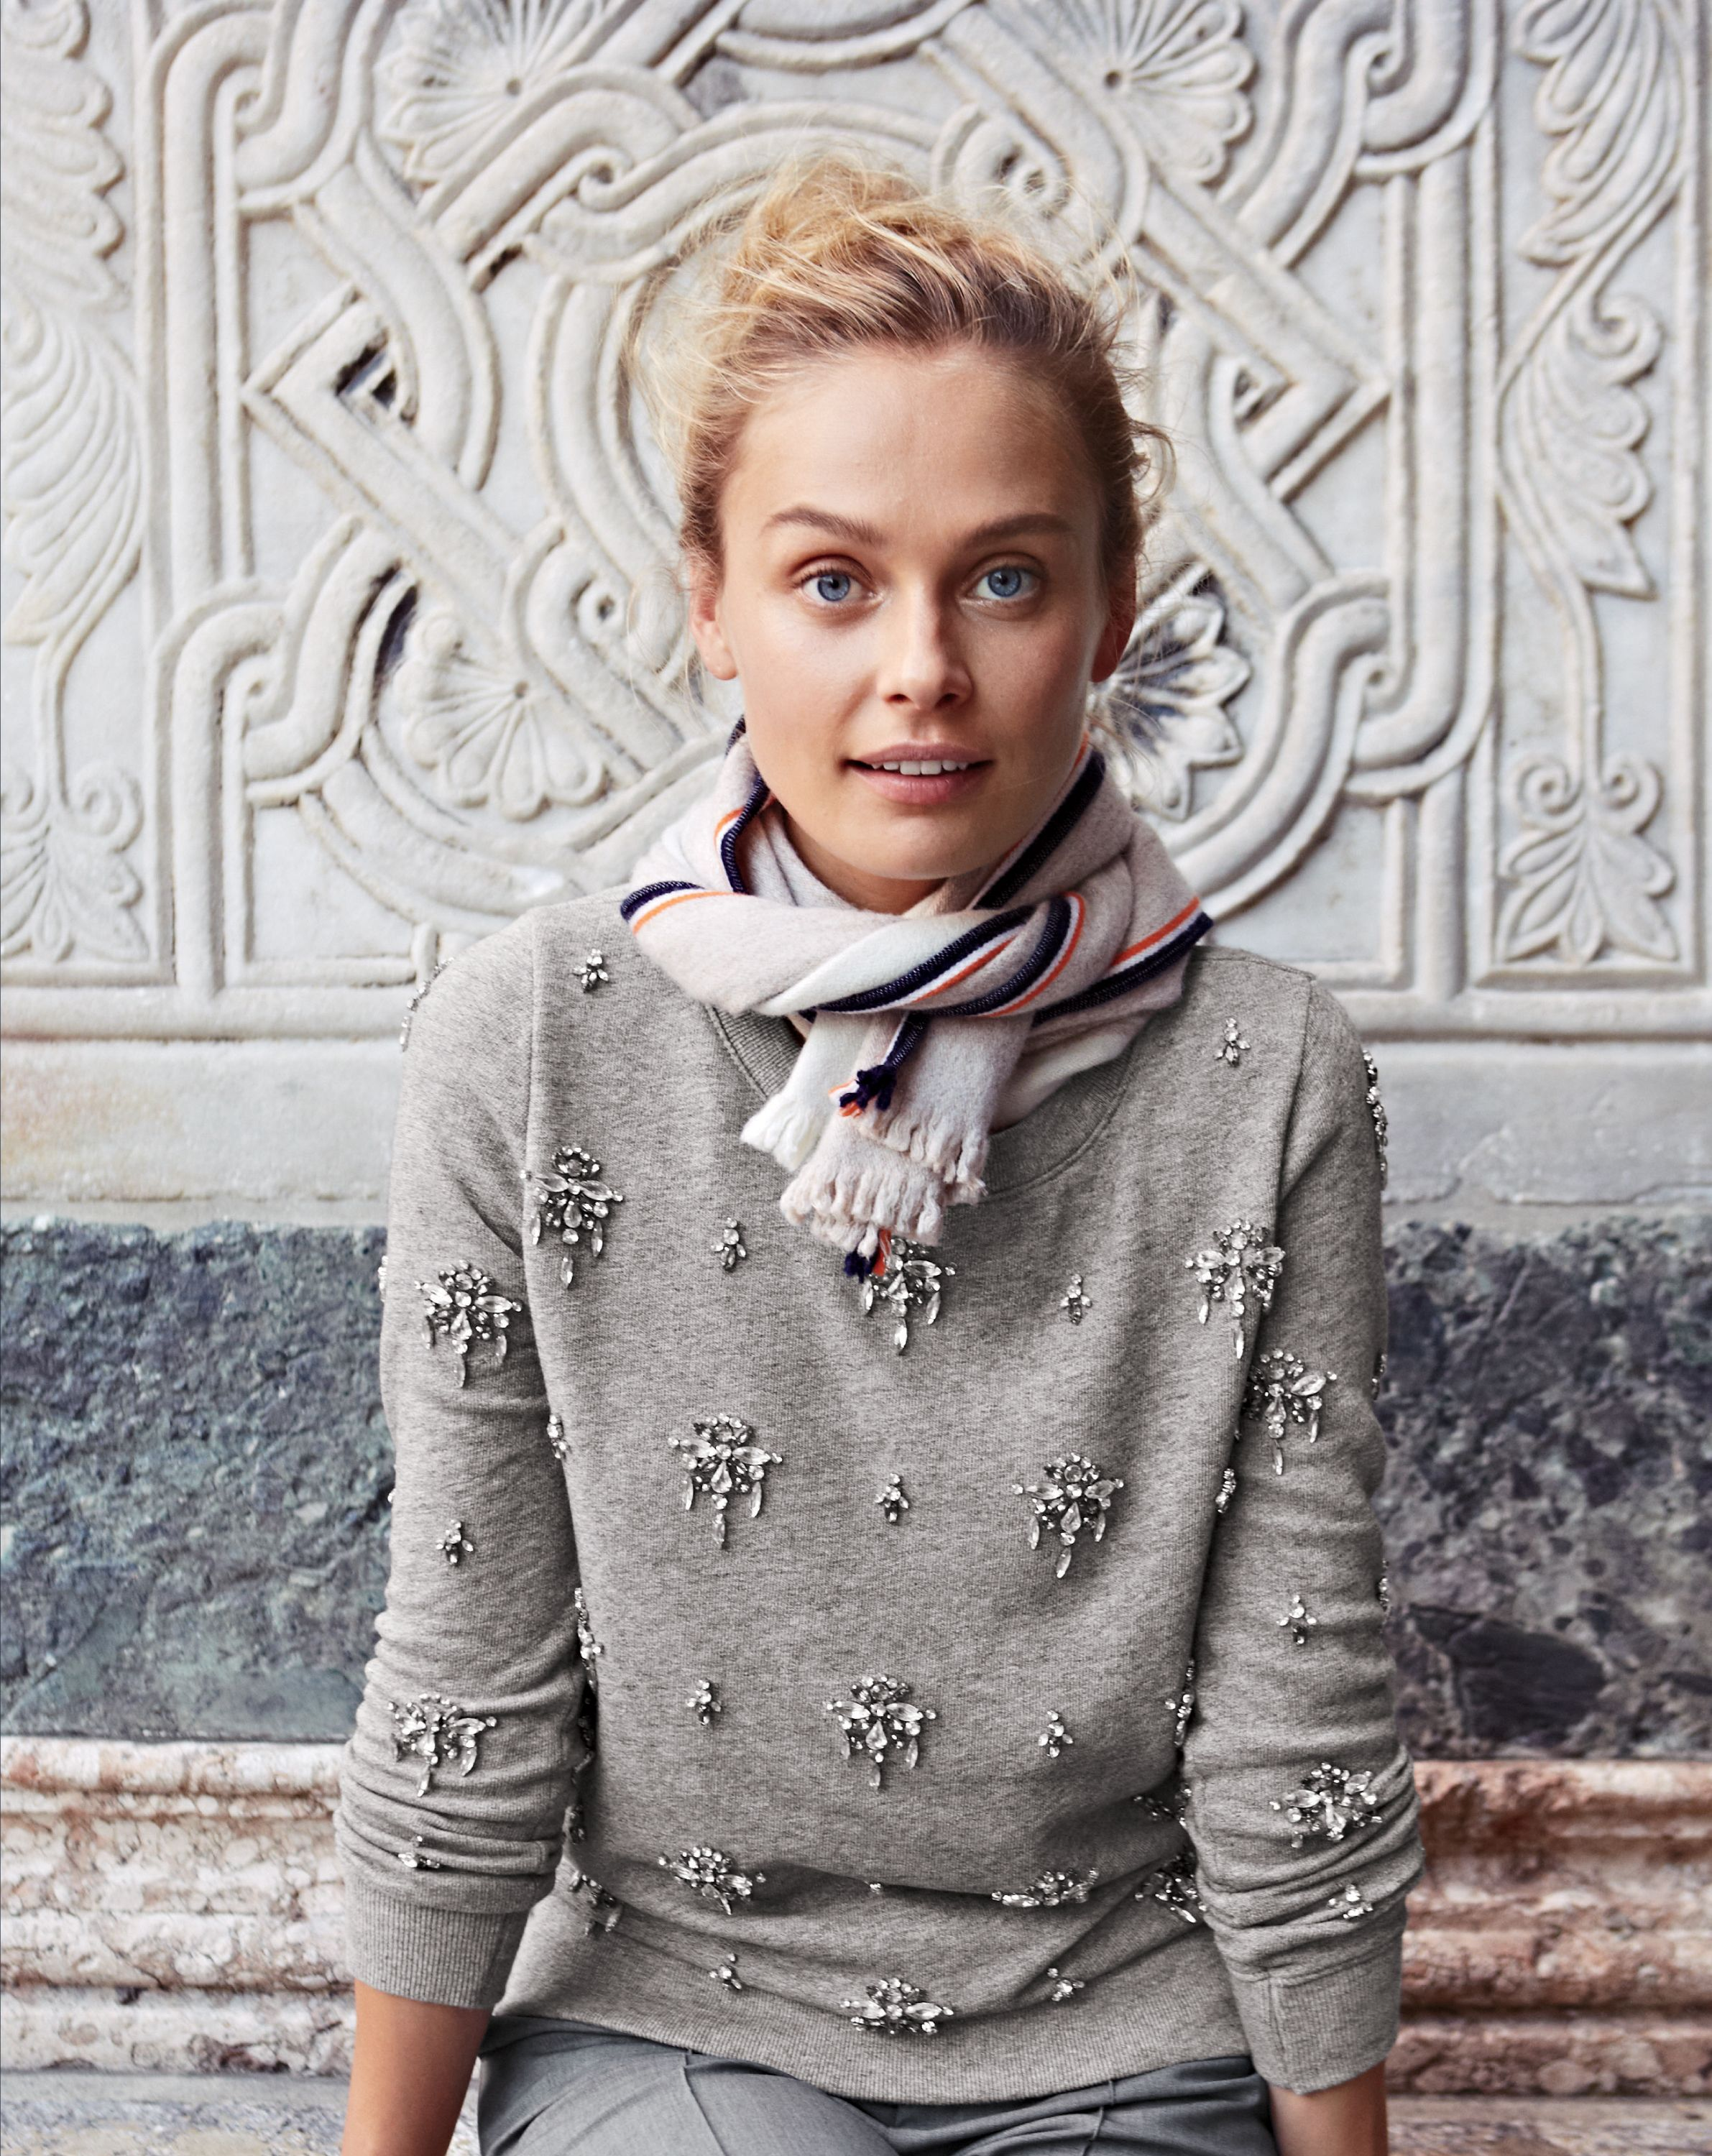 2d75769412e9 Jeweled Chandelier Sweatshirt | J.Crew. Styling idea: Wear a embellished  sweater or sweatshirt in a similar color with a similar striped scarf. Cute  look!